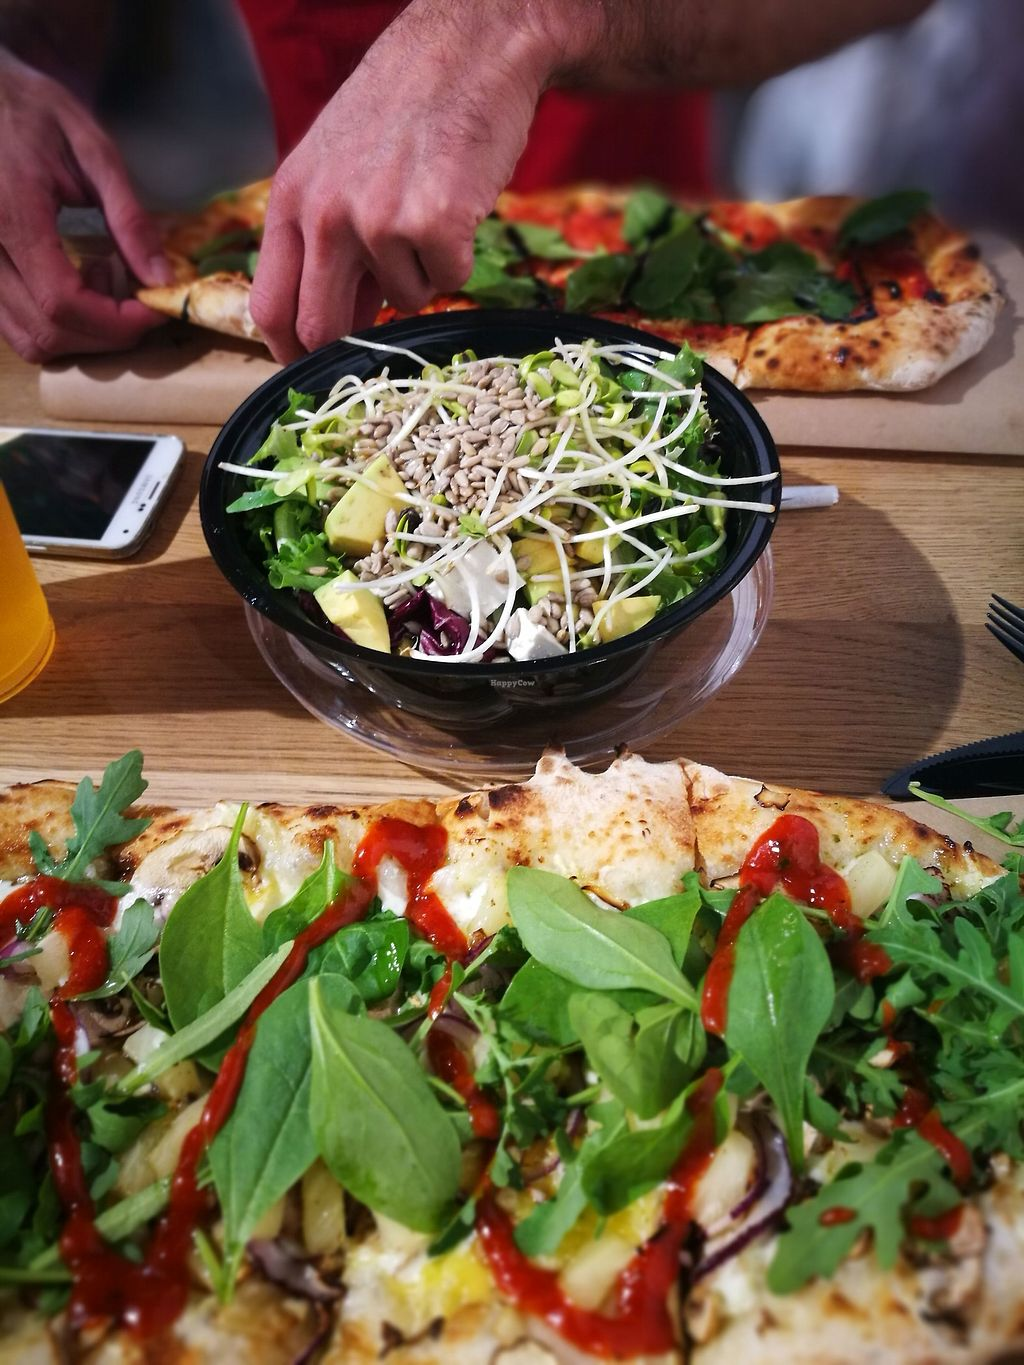 """Photo of Pizzatopia  by <a href=""""/members/profile/k-girl80"""">k-girl80</a> <br/>two vegan pizzas and a salad to balance out the carbs <br/> October 12, 2017  - <a href='/contact/abuse/image/97708/314524'>Report</a>"""